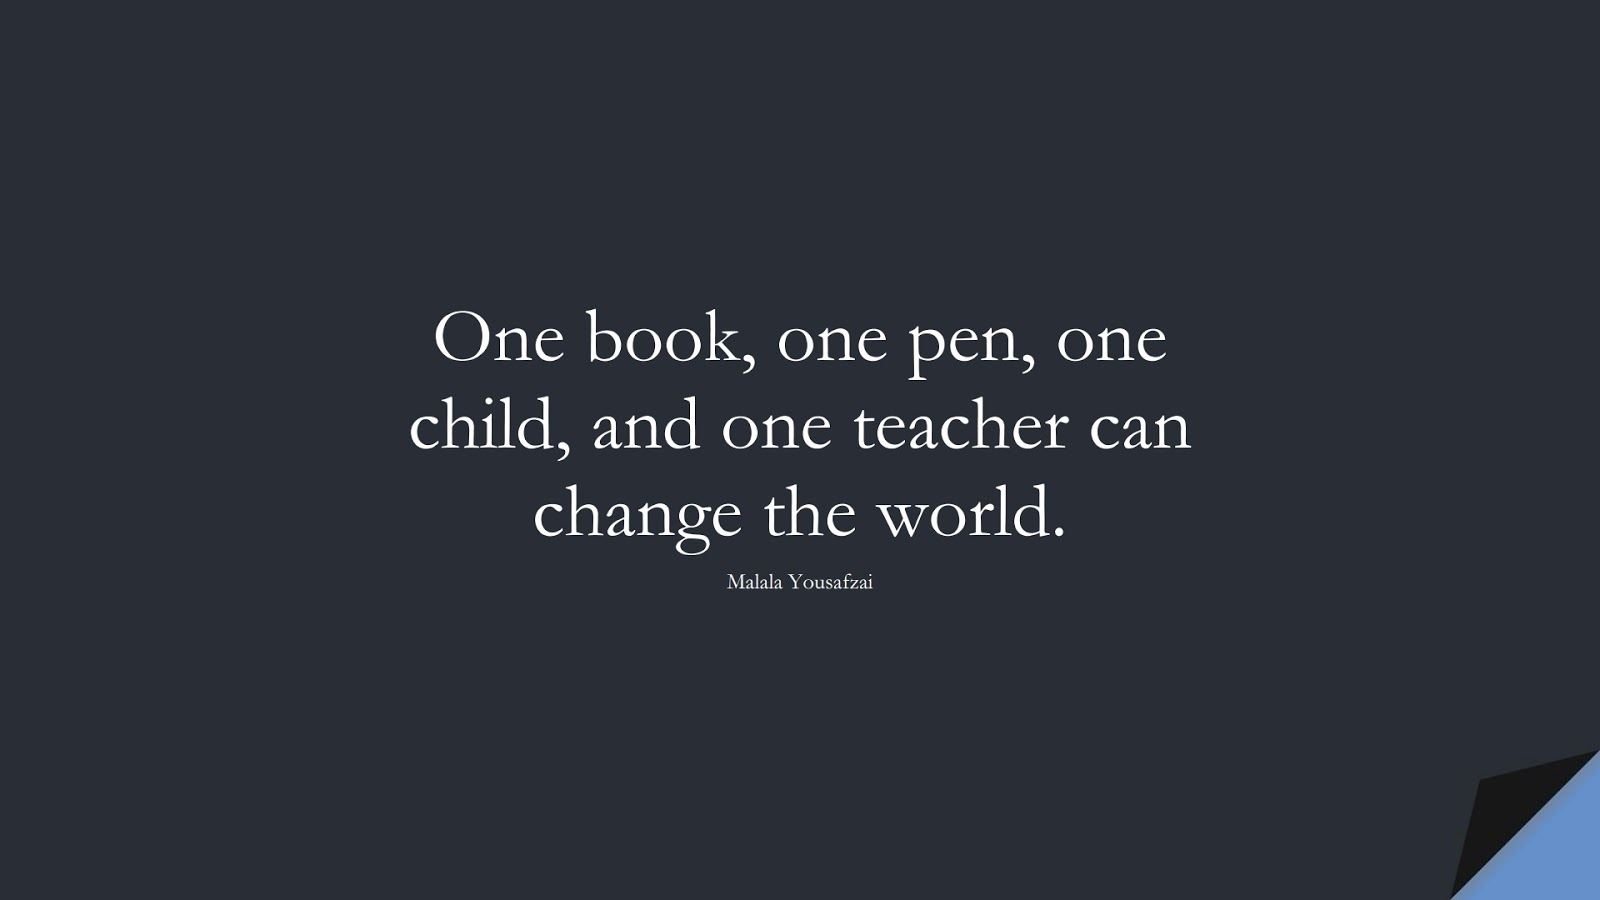 One book, one pen, one child, and one teacher can change the world. (Malala Yousafzai);  #HumanityQuotes